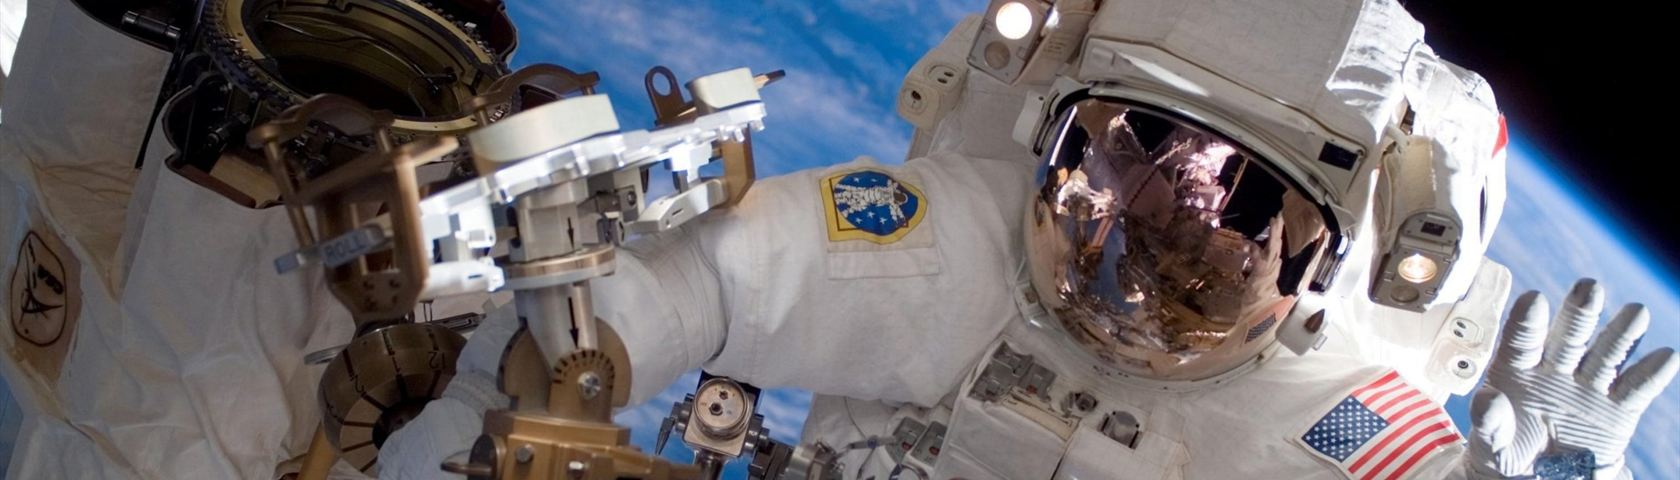 Space Station Space Walk